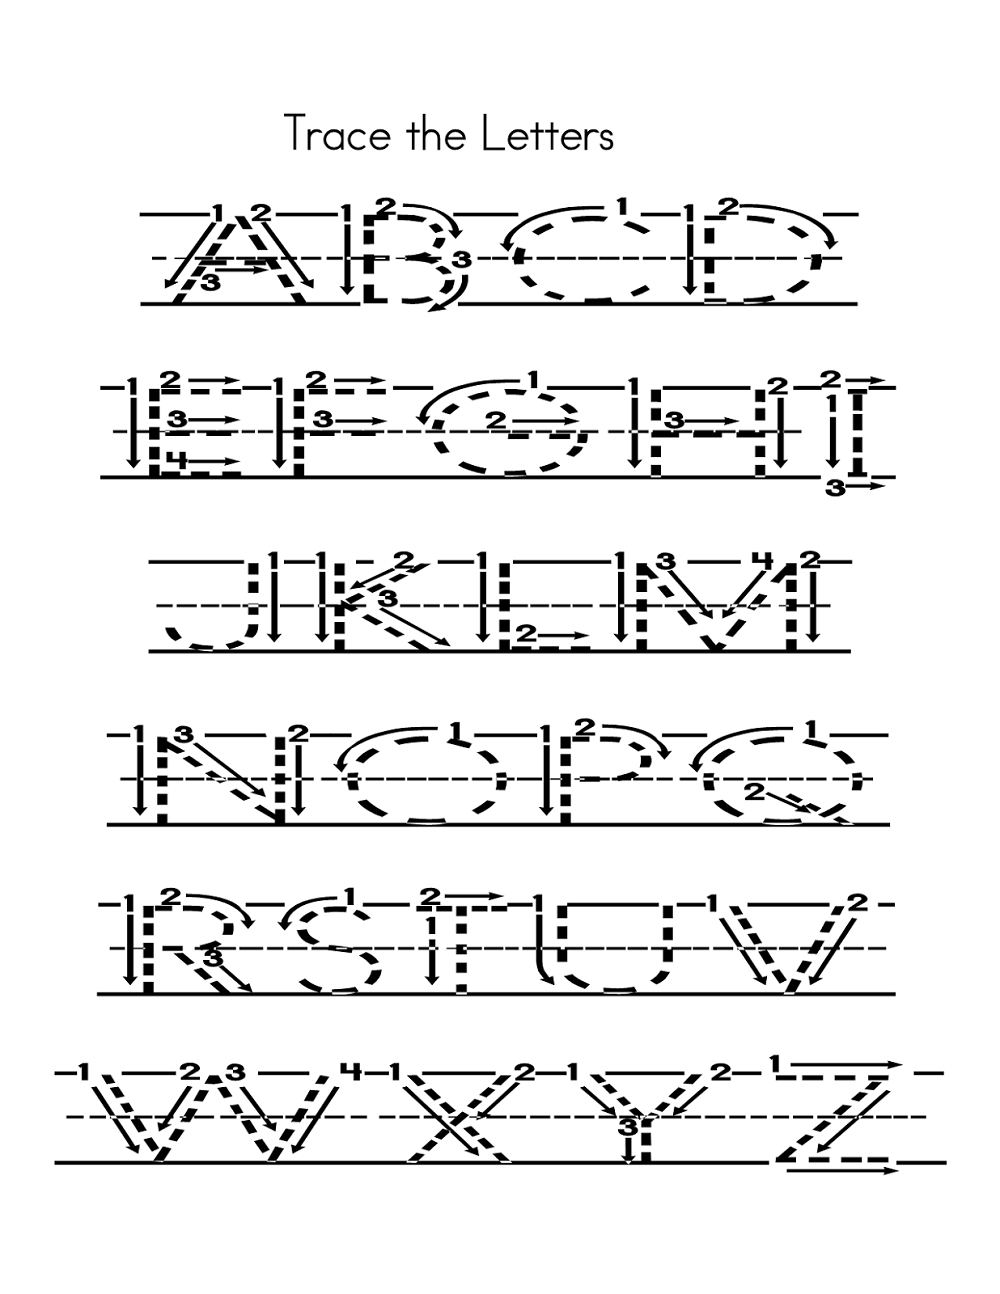 Capital Alphabets Tracing Worksheets Printable | Learning